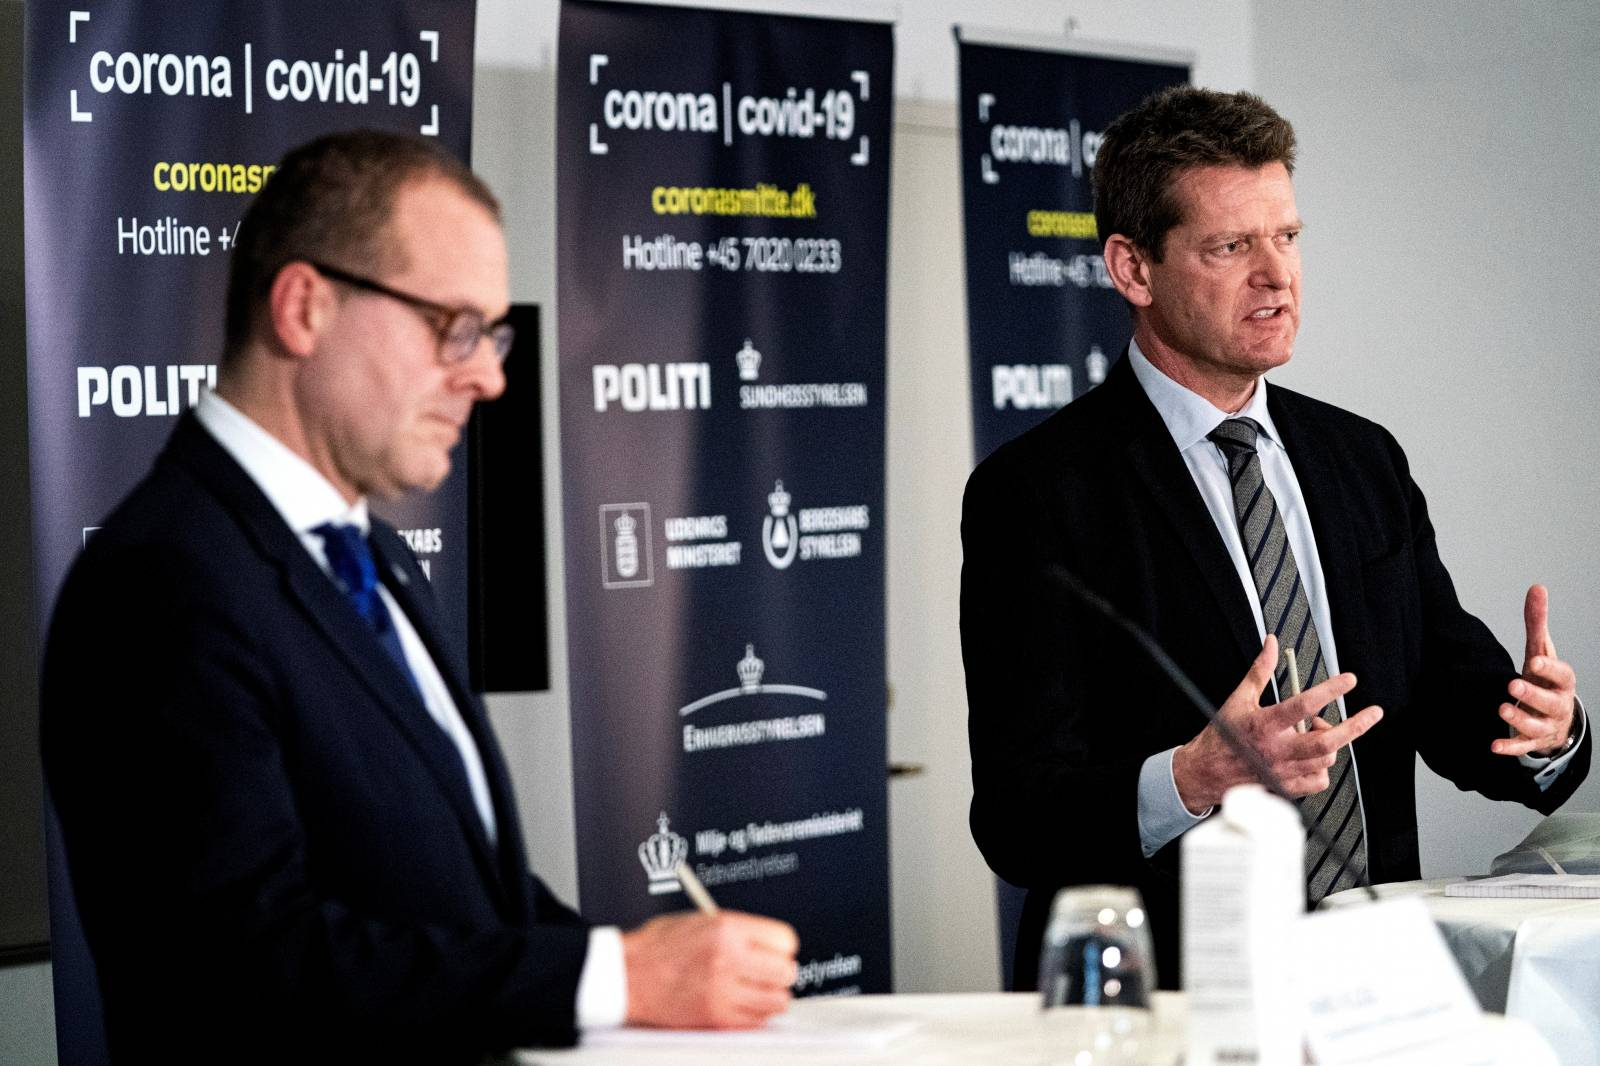 News conference about the coronavirus disease (COVID-19) at Eigtveds Pakhus, in Copenhagen